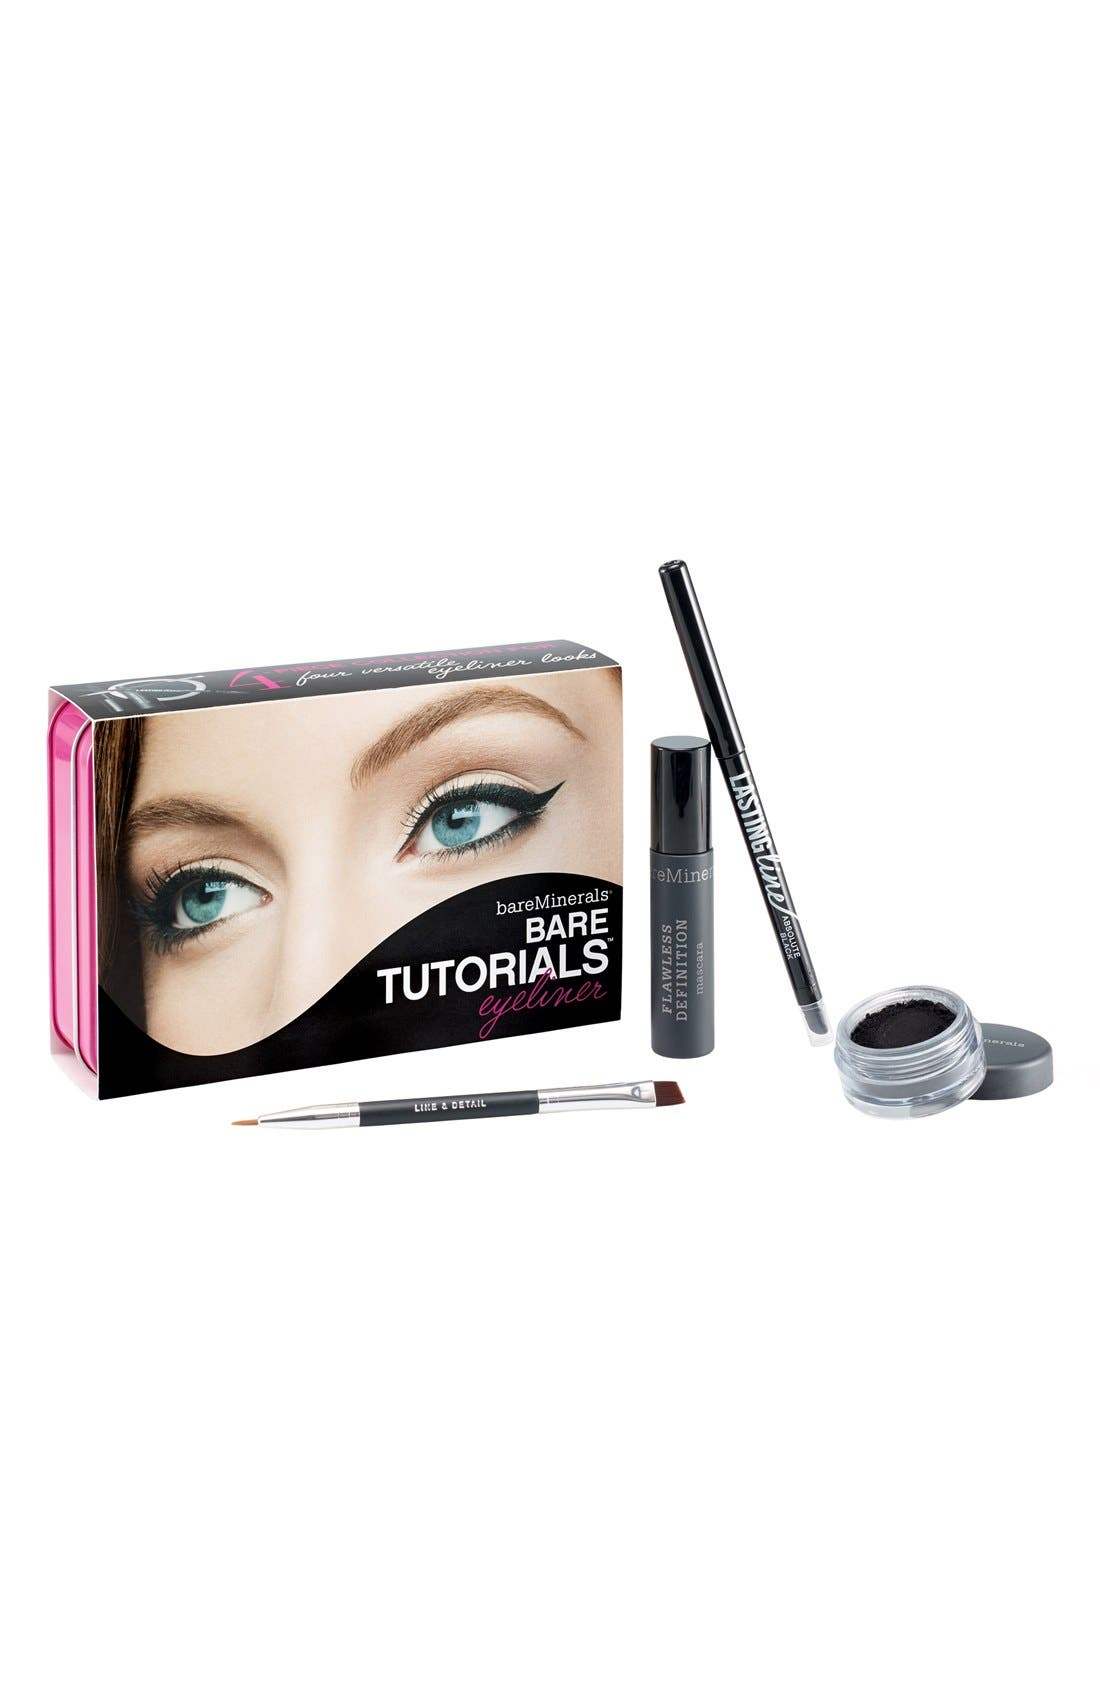 Bare Tutorials Eyeliner Set,                         Main,                         color, 000